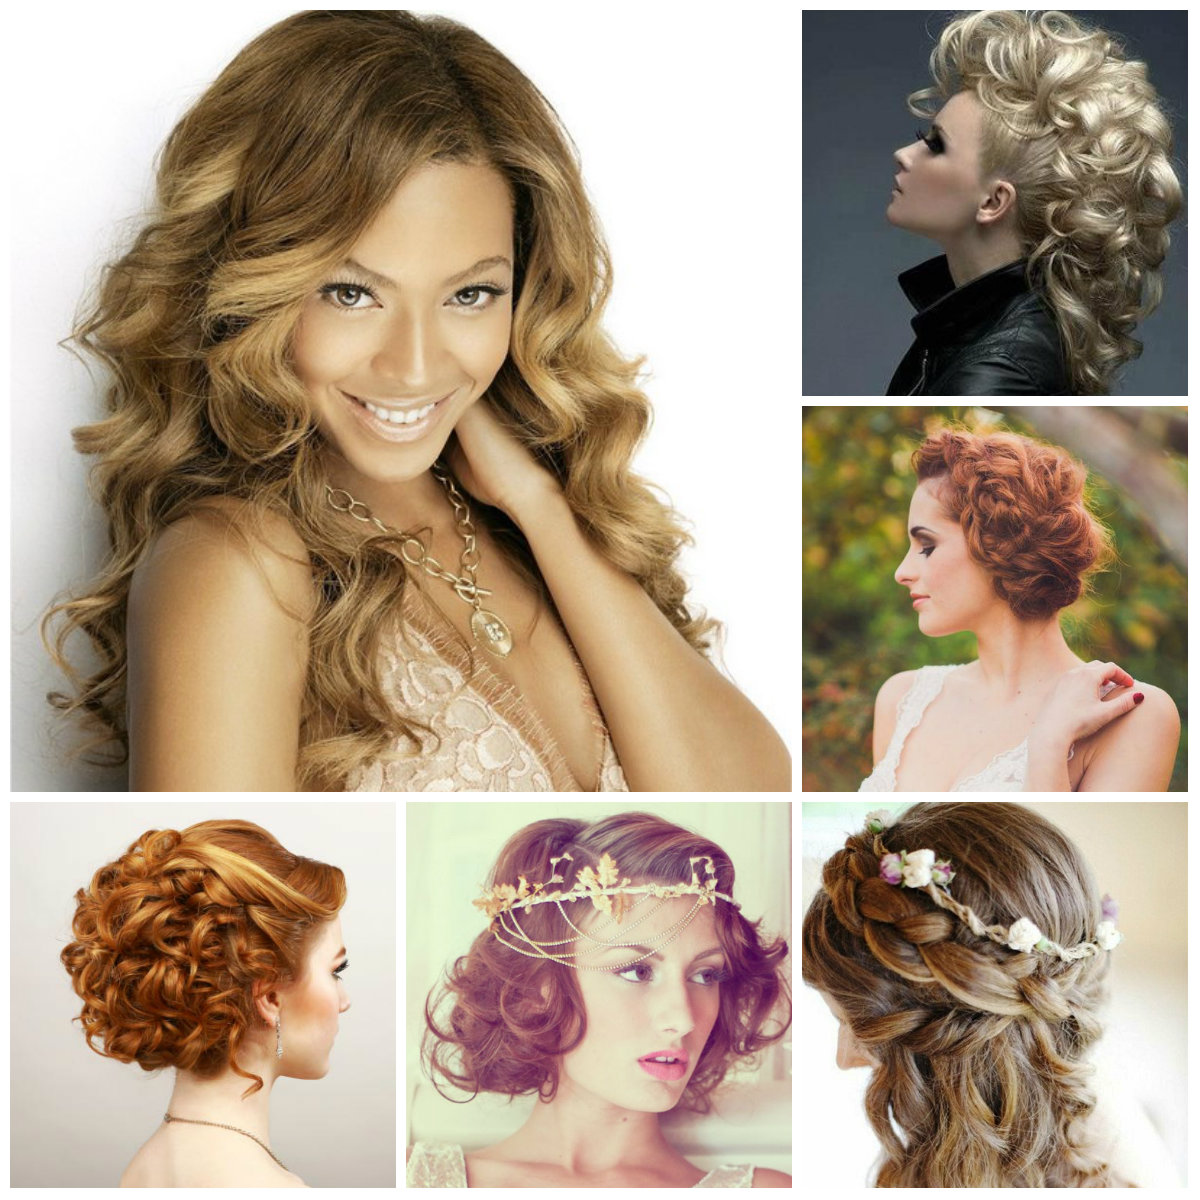 curly hairstyles for prom 2022